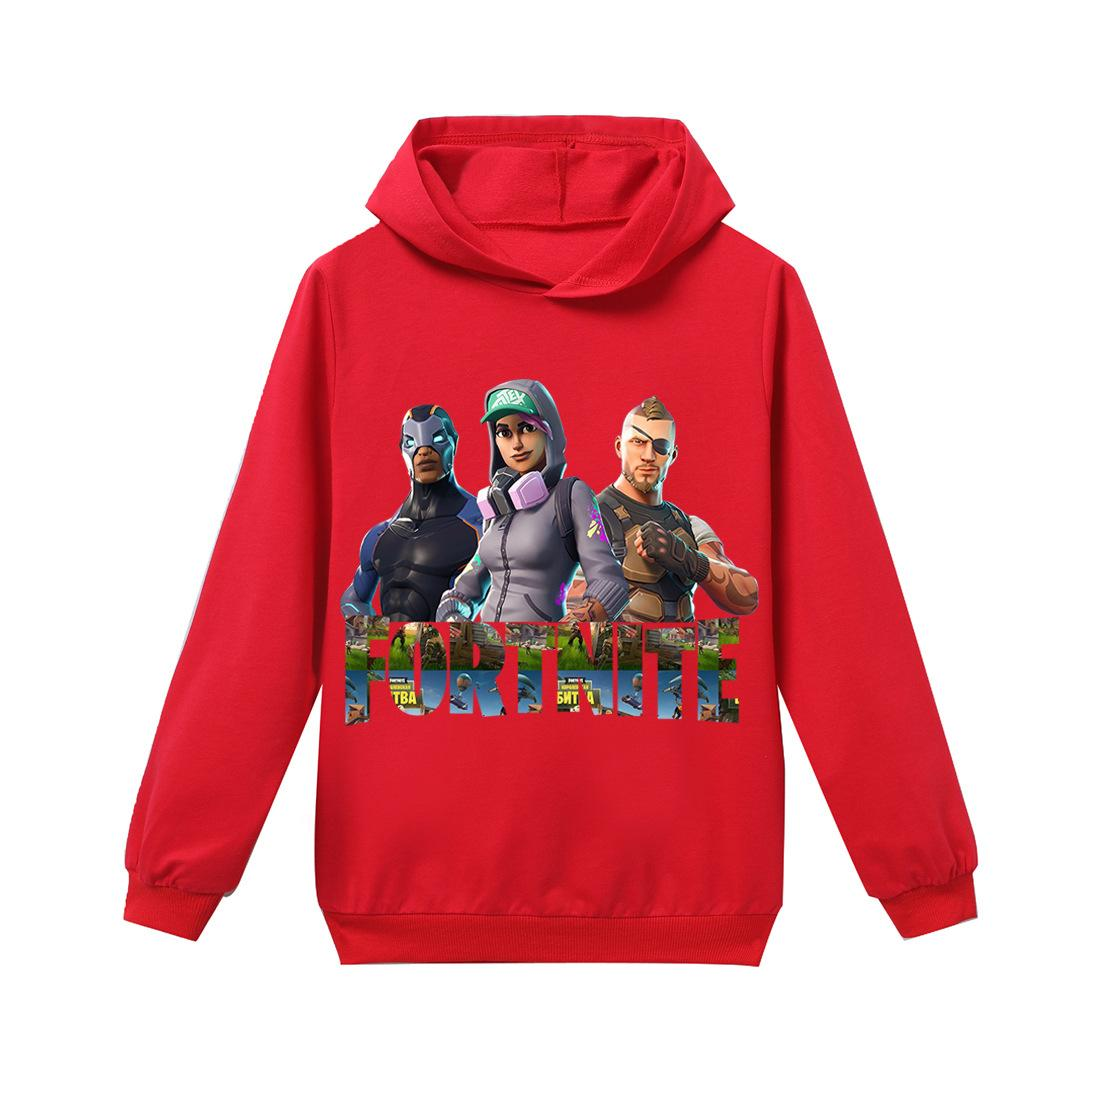 Explosion Models 3d Hooded Cartoon Anime Dragon Ball Hoodie Long Sleeve Wukong Muscle Men Sports Couple Hoodie To Have A Unique National Style Men's Clothing